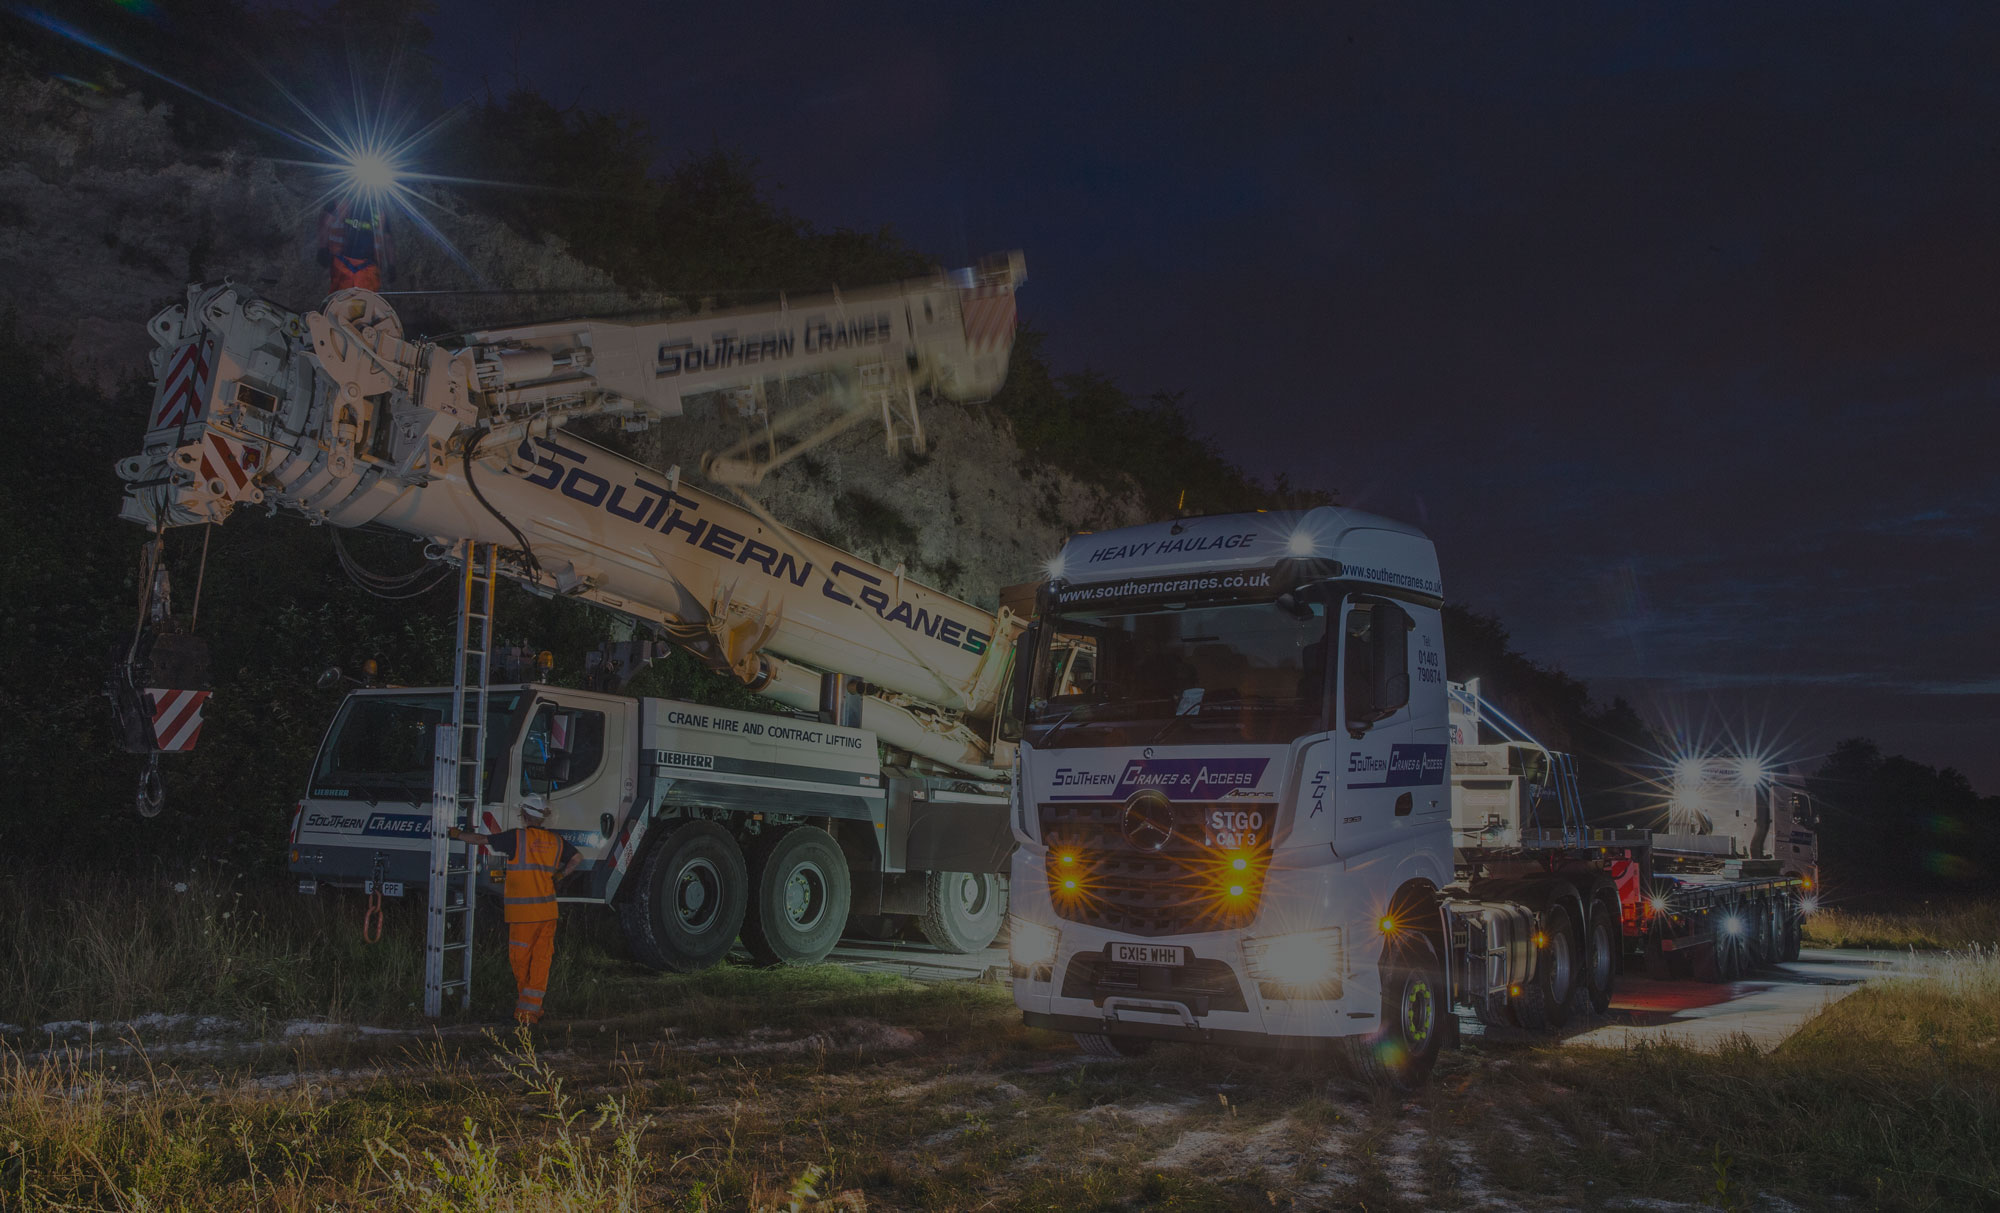 Southern Cranes Heavy Haulage